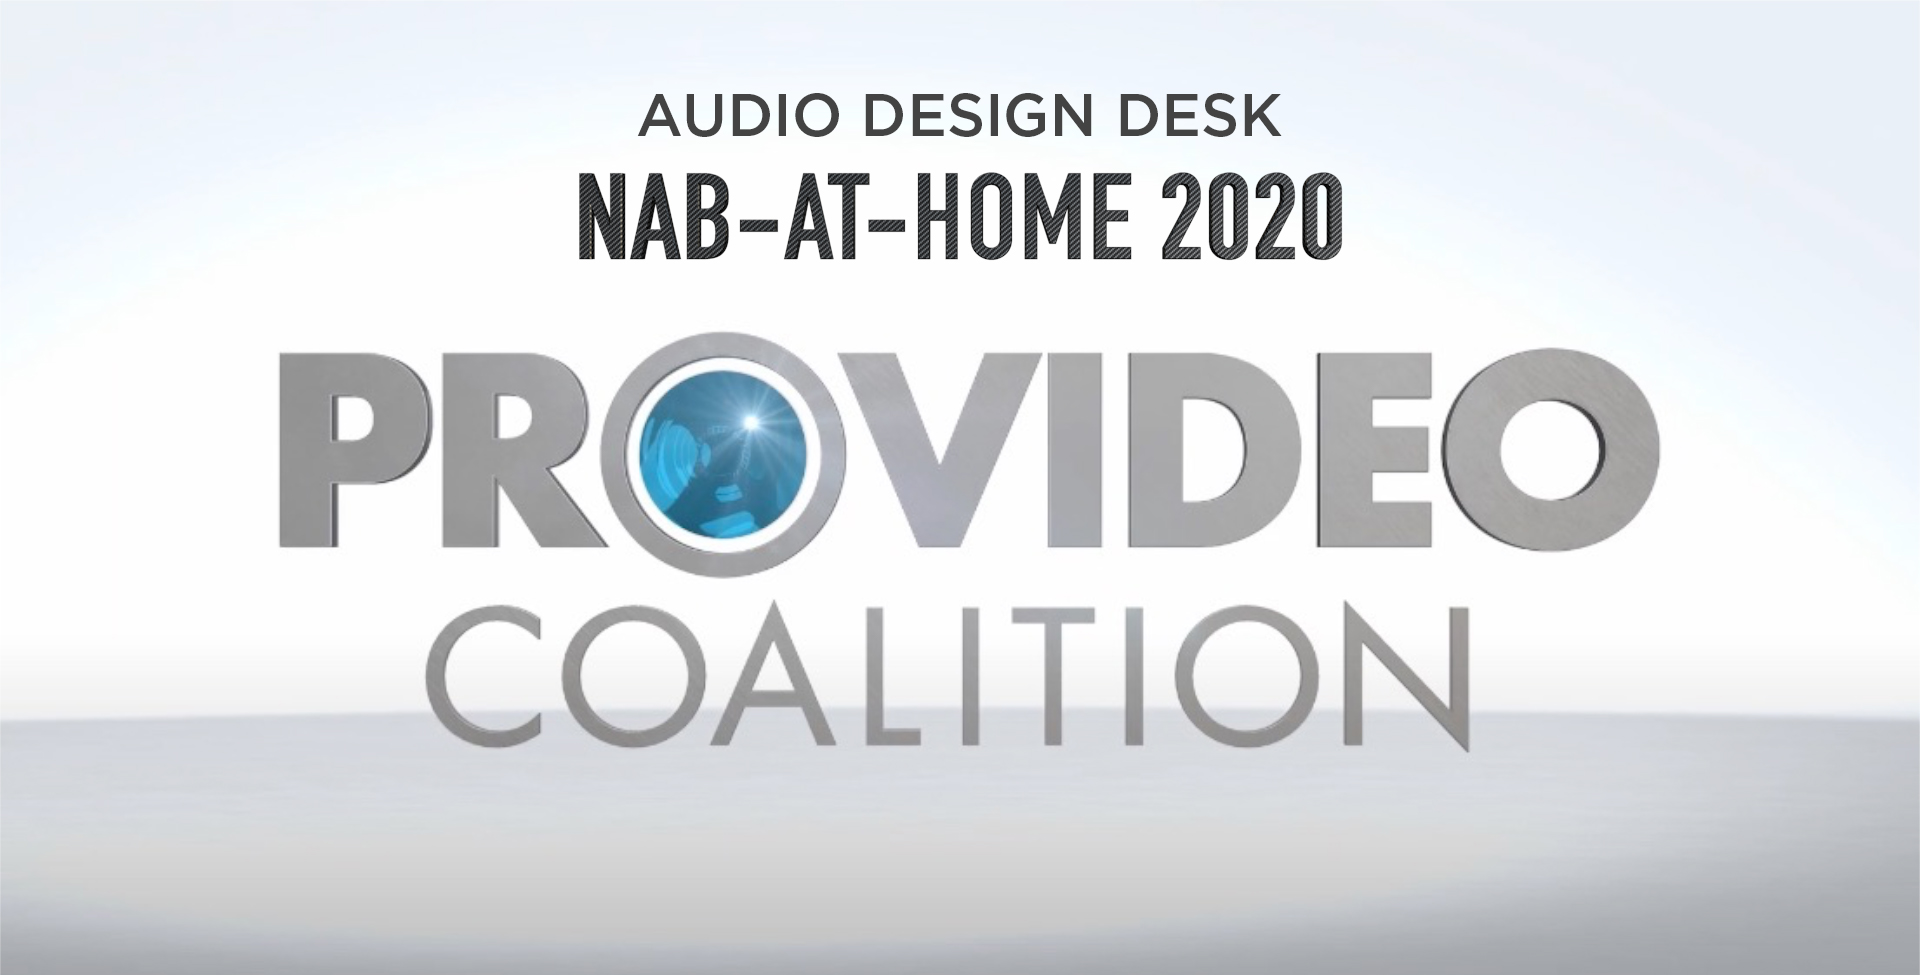 nab-at-home-2020-audio-design-desk